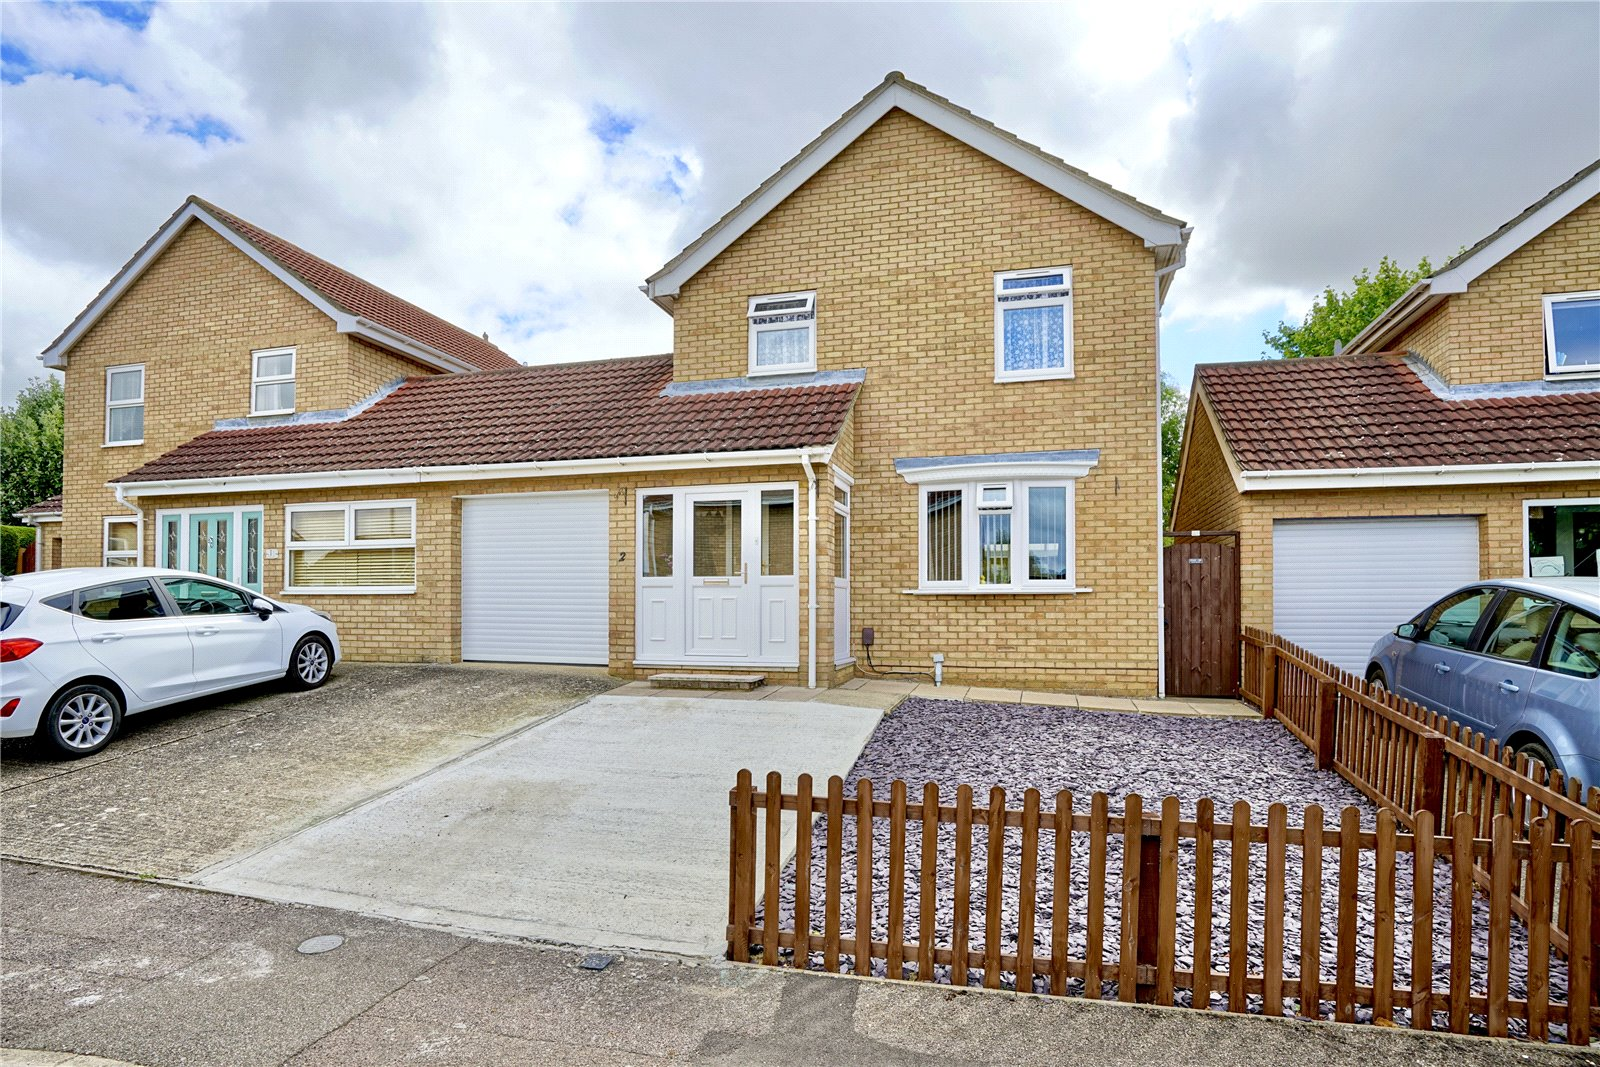 3 bed house for sale in Eaton Socon, Royal Court, PE19 8PN, PE19